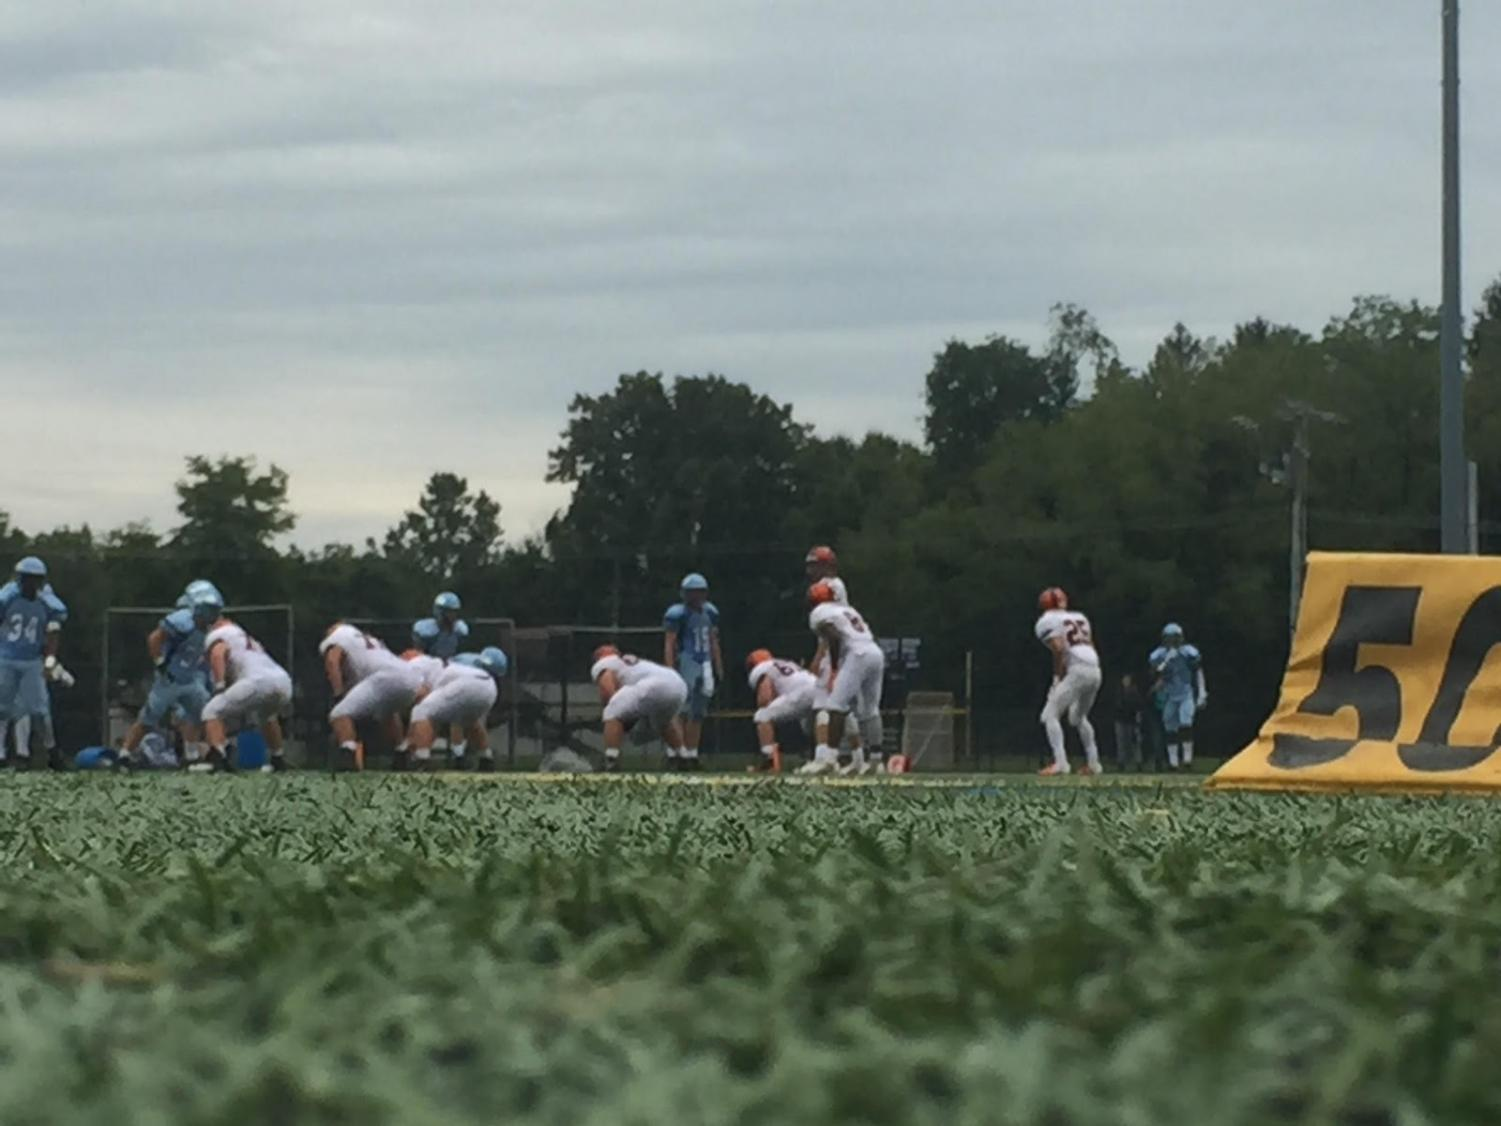 Saturated September Saturday: North Penn hosts Pennsbury on the NPHS turf field on September 8, 2018 NP defeated the Falcons 33-7.